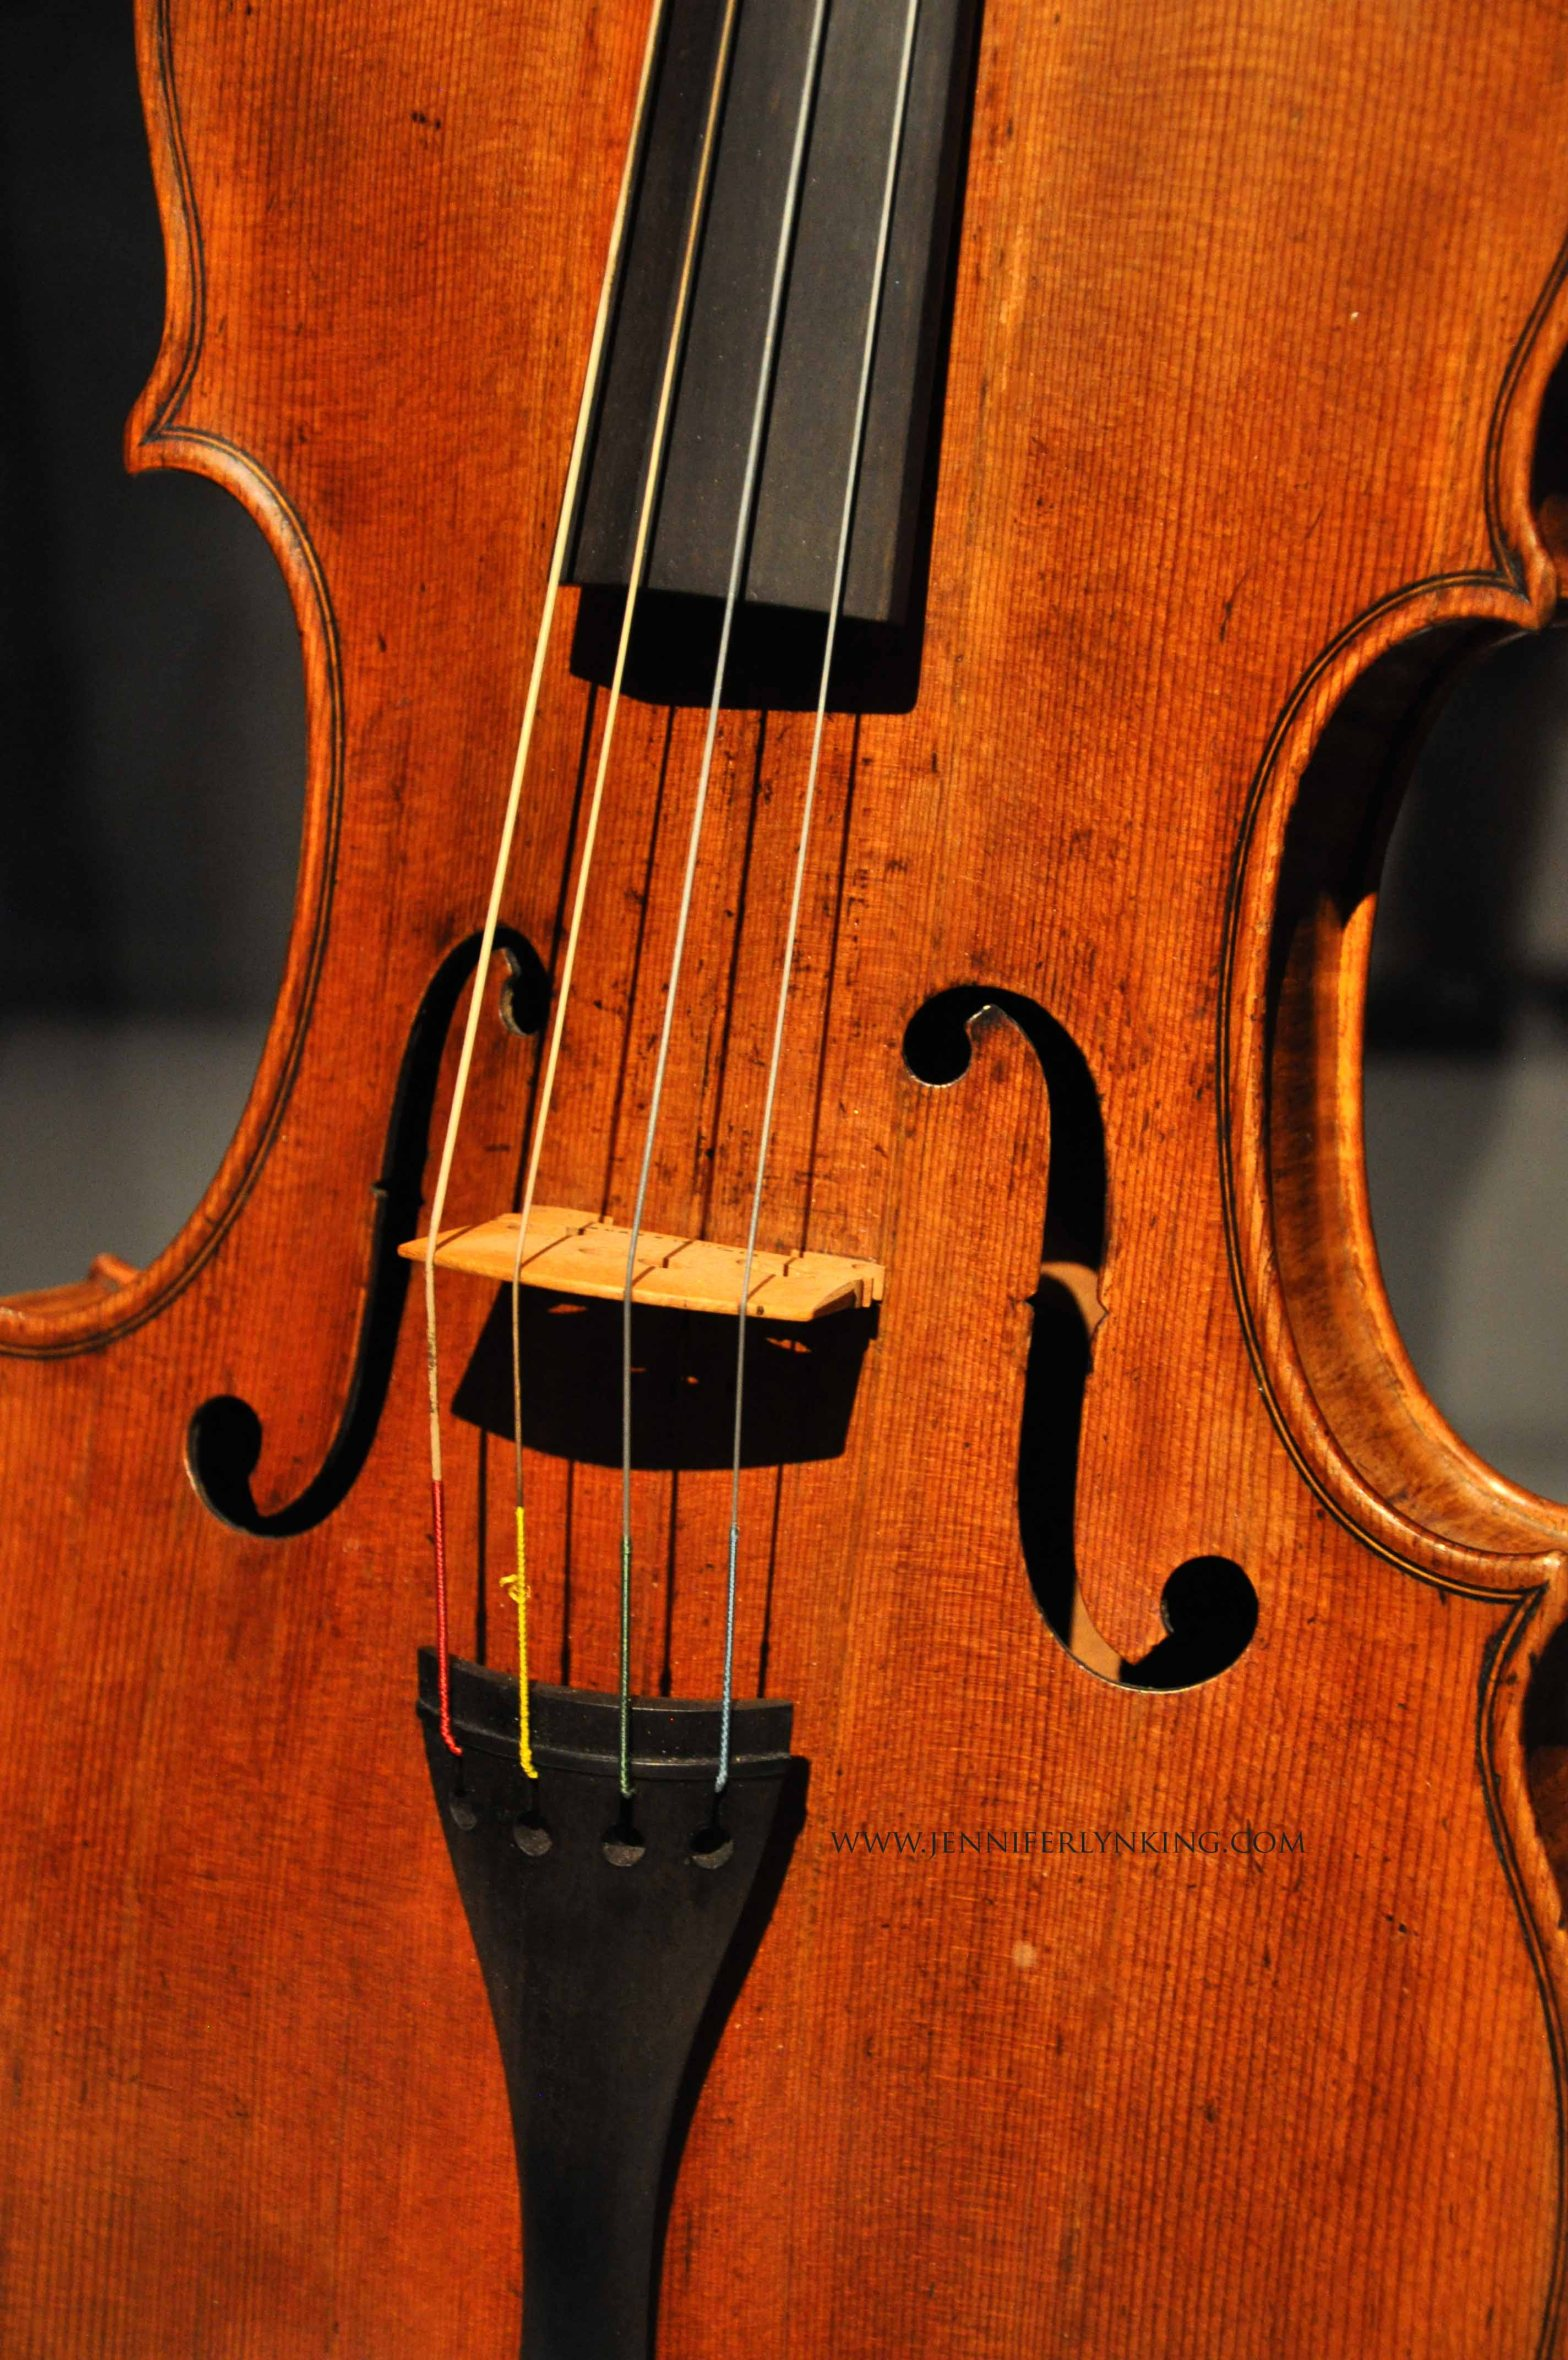 The Amati viola, the Cincinnati Museum of Art